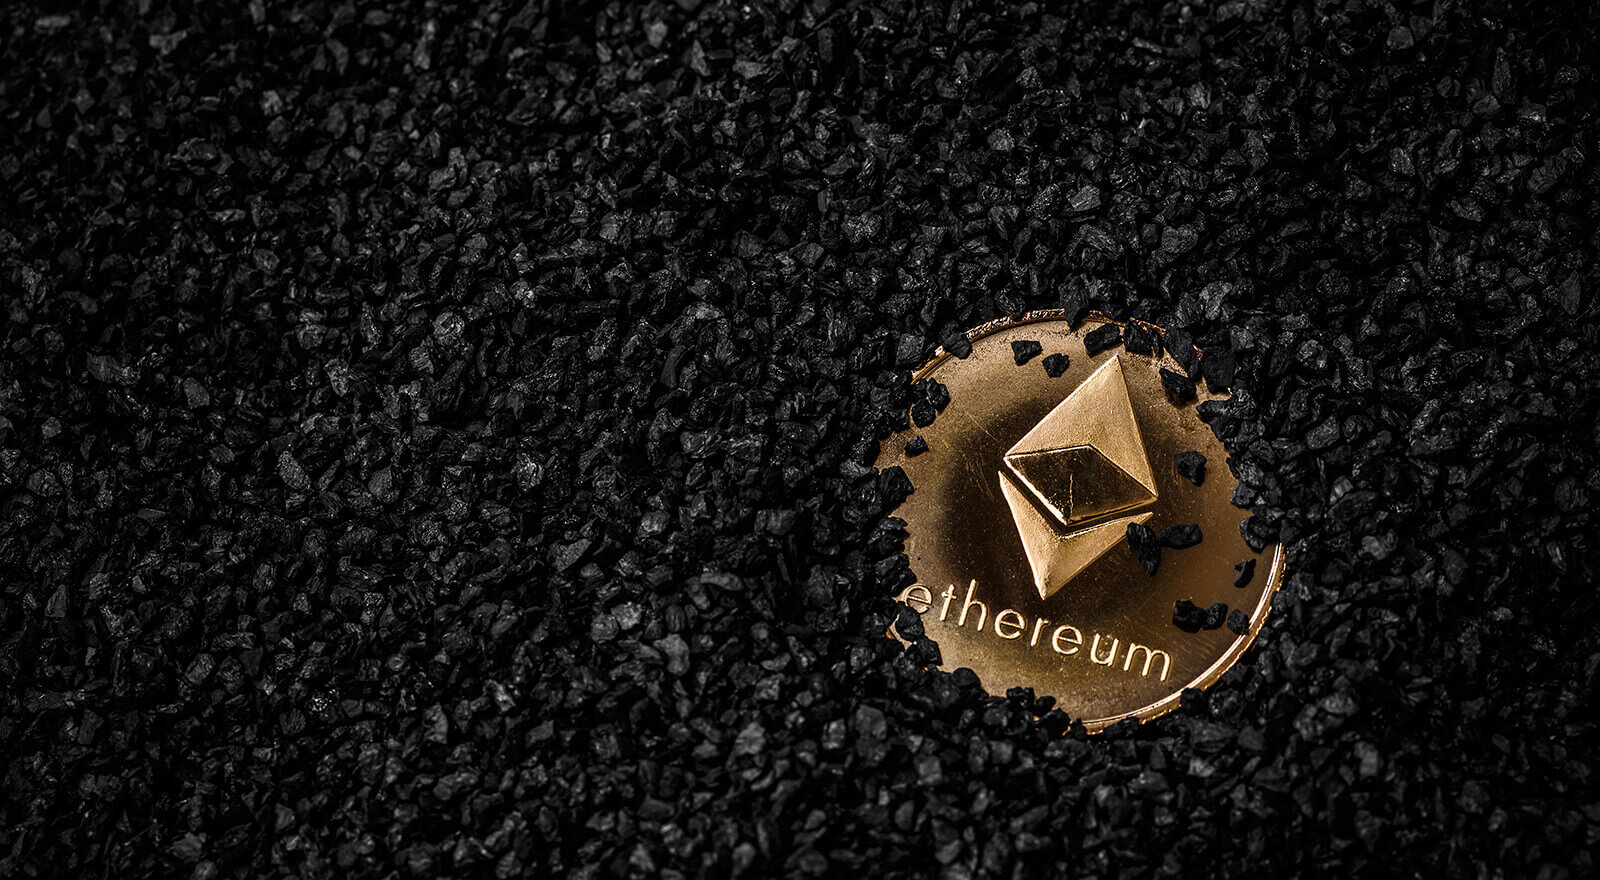 ethereum coin covered in coal